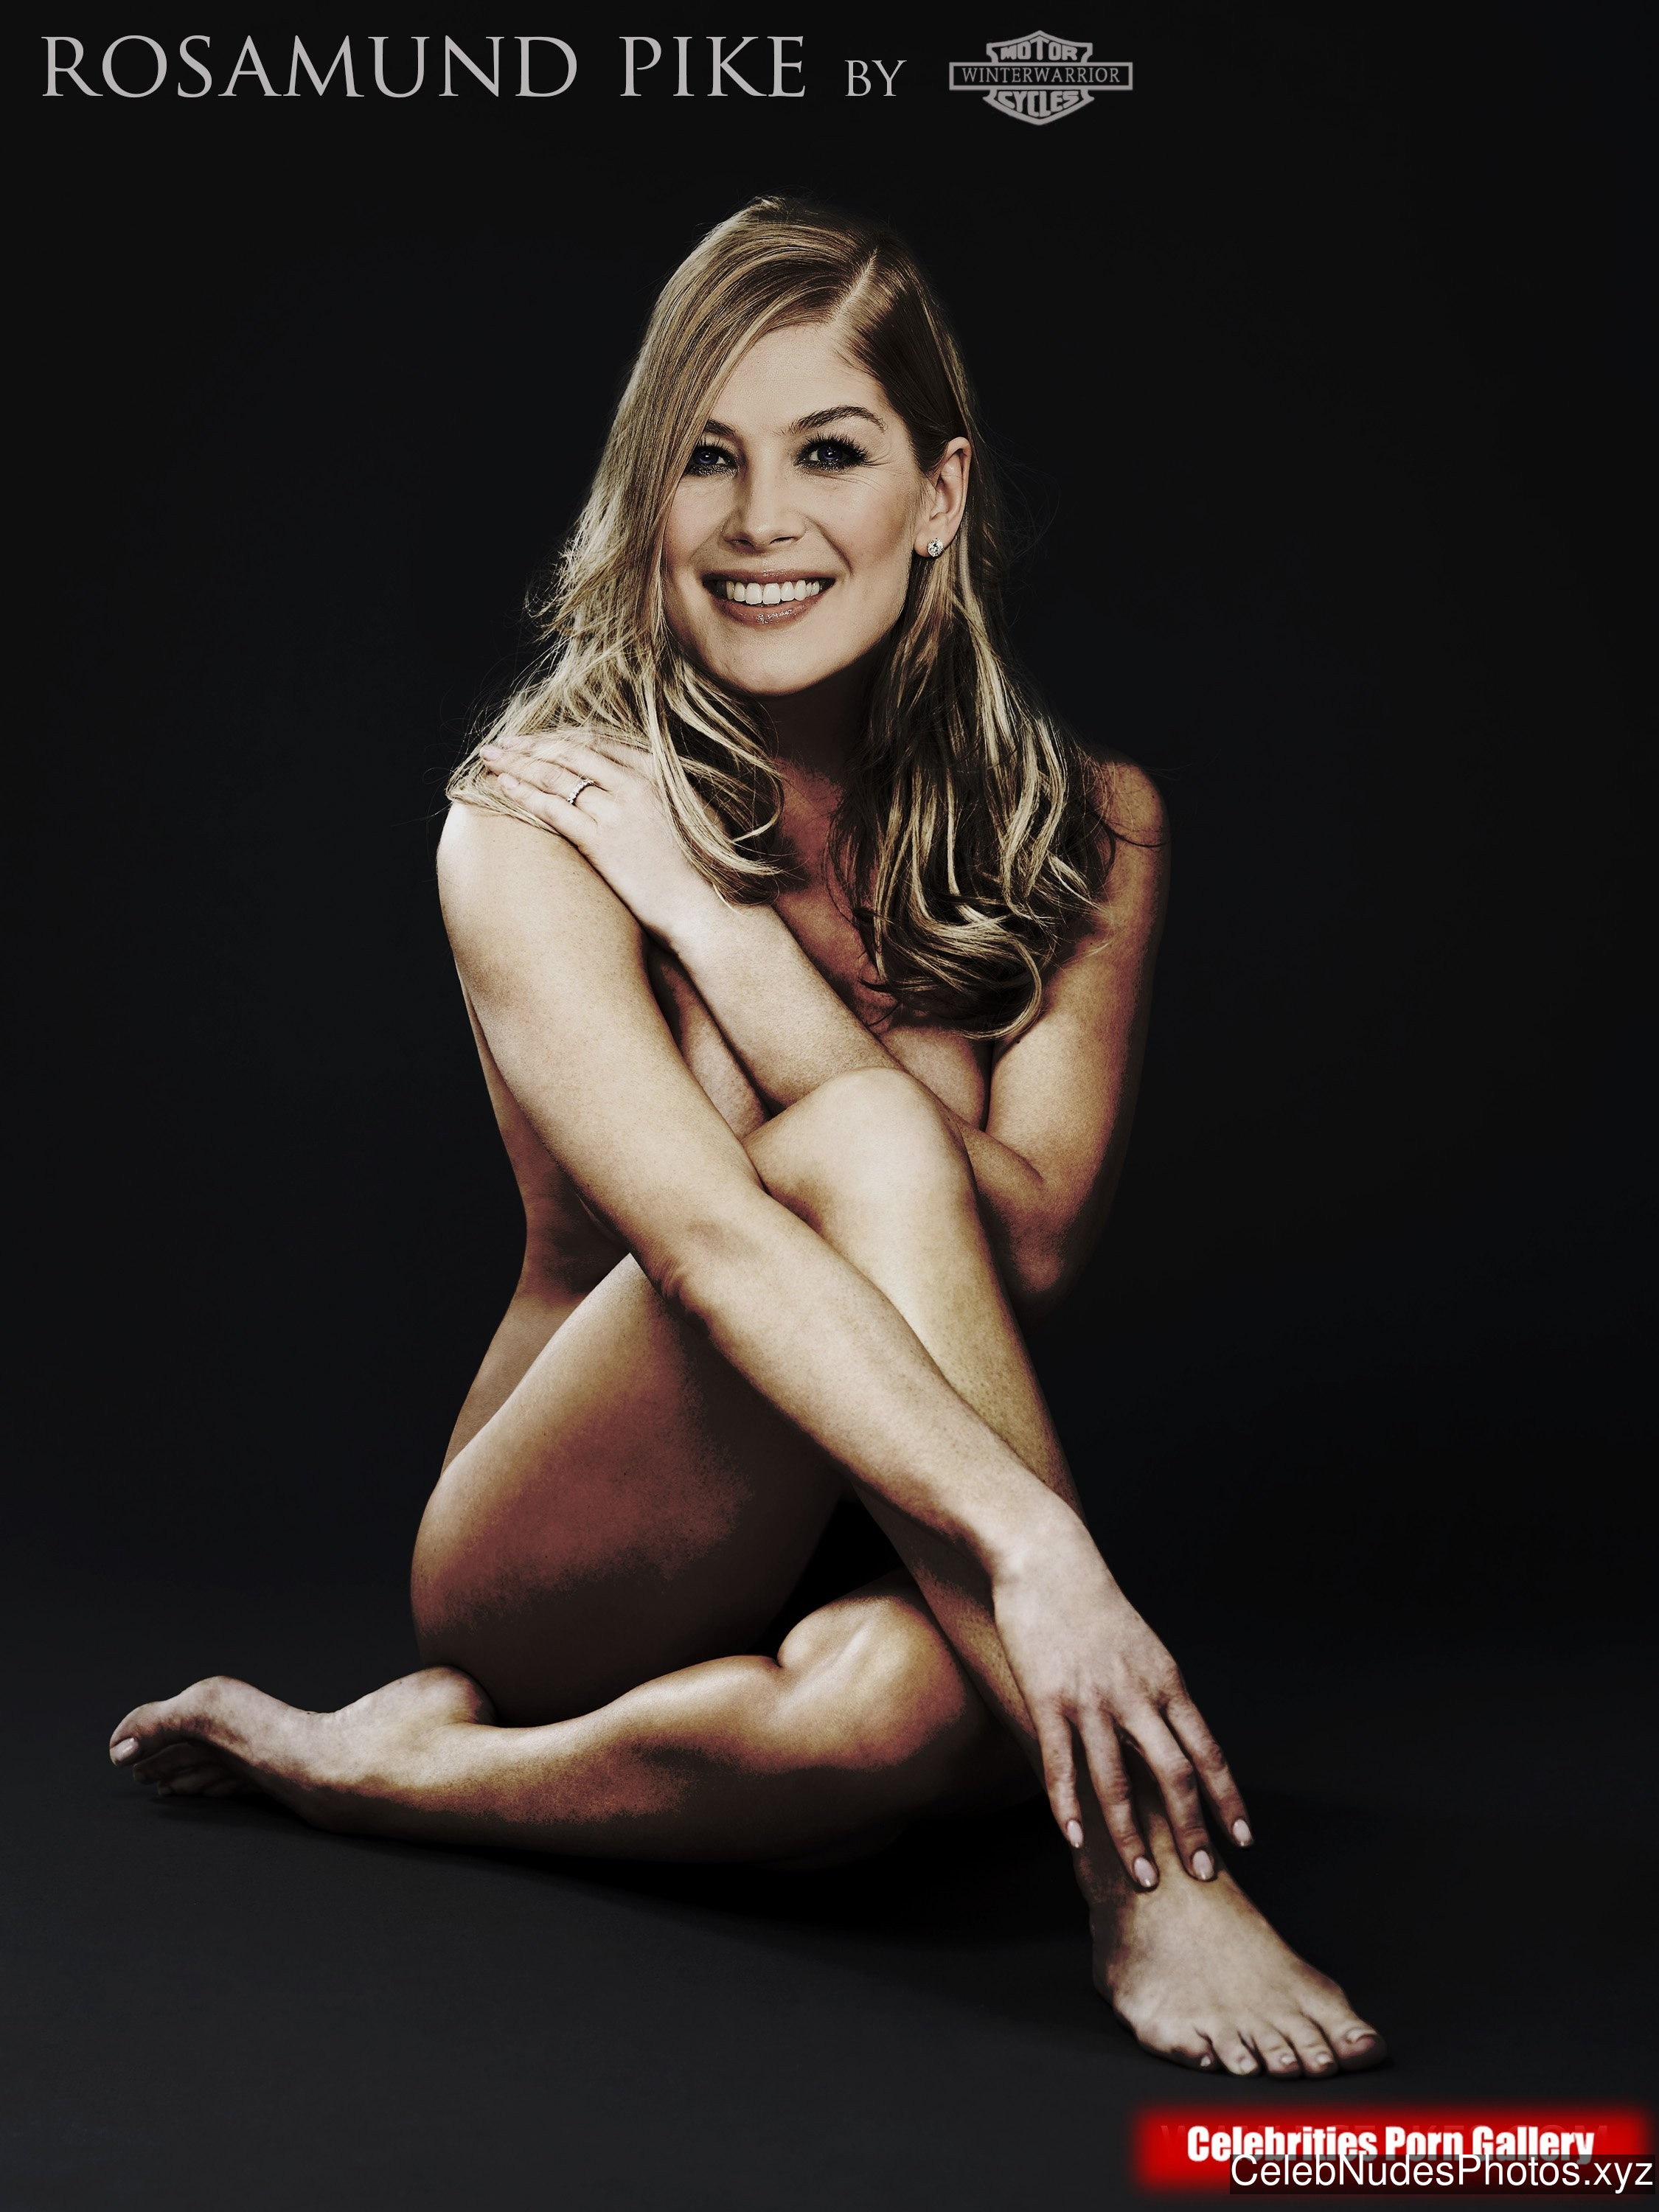 Rosamund Pike naked celebrity pictures